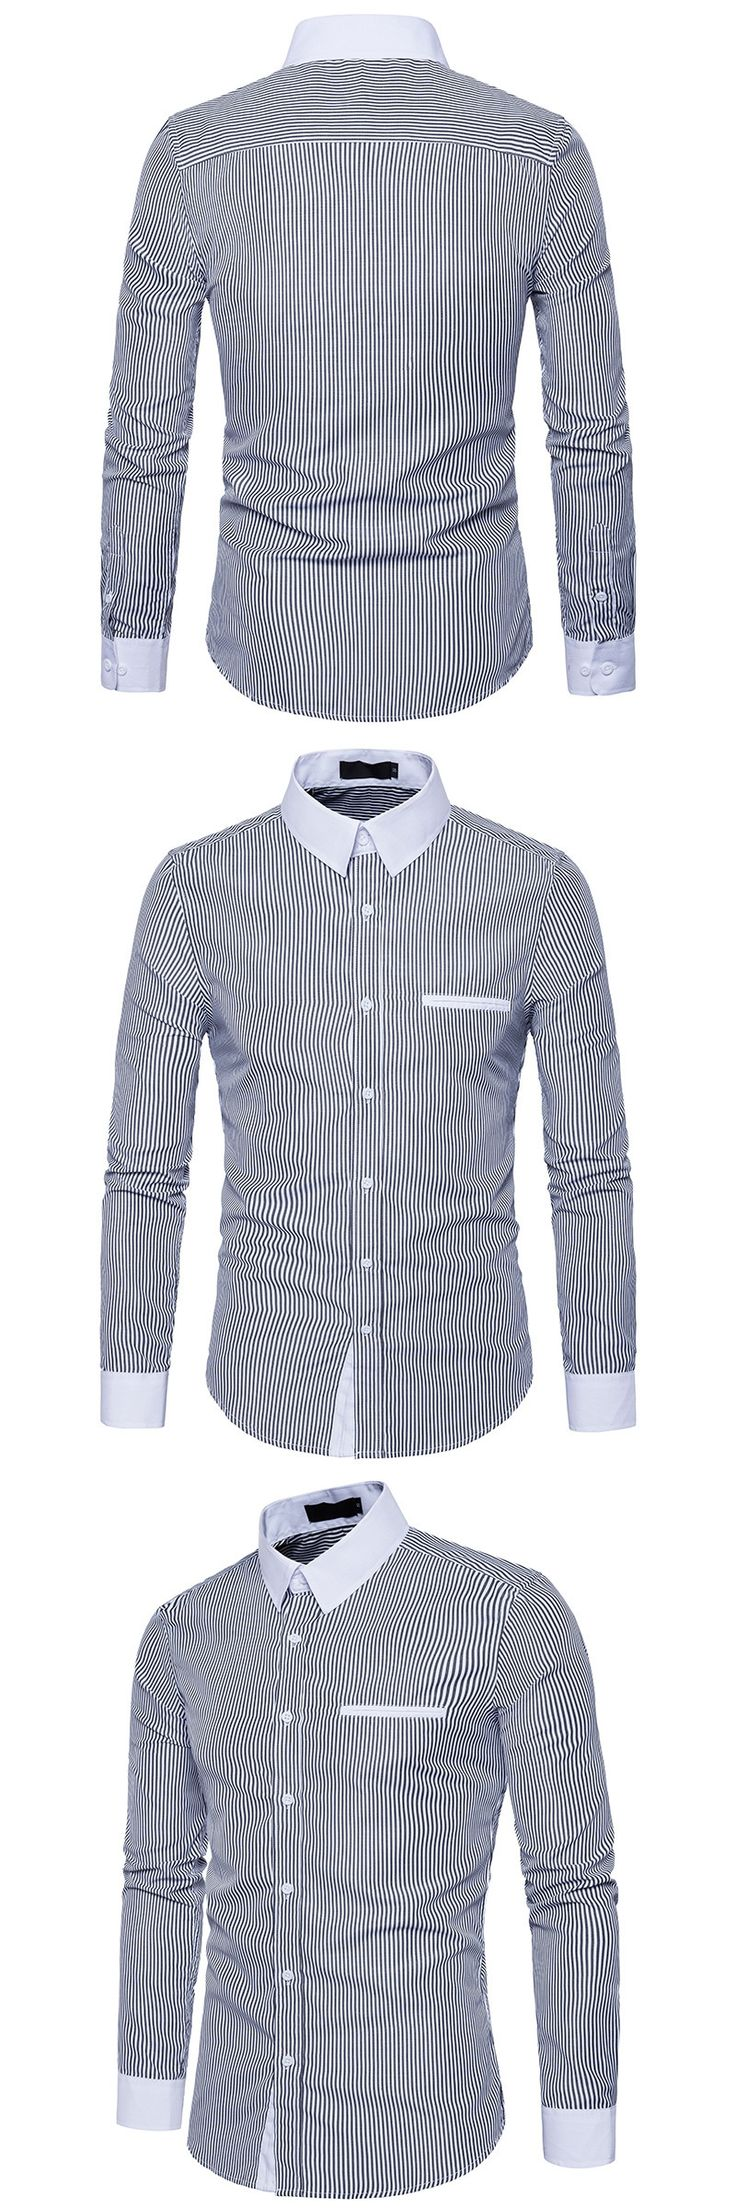 2017 Fashion New Mens Striped Shirts with Long Sleeved Male Imported Urban Clothing White Collar Designers Man Shirt